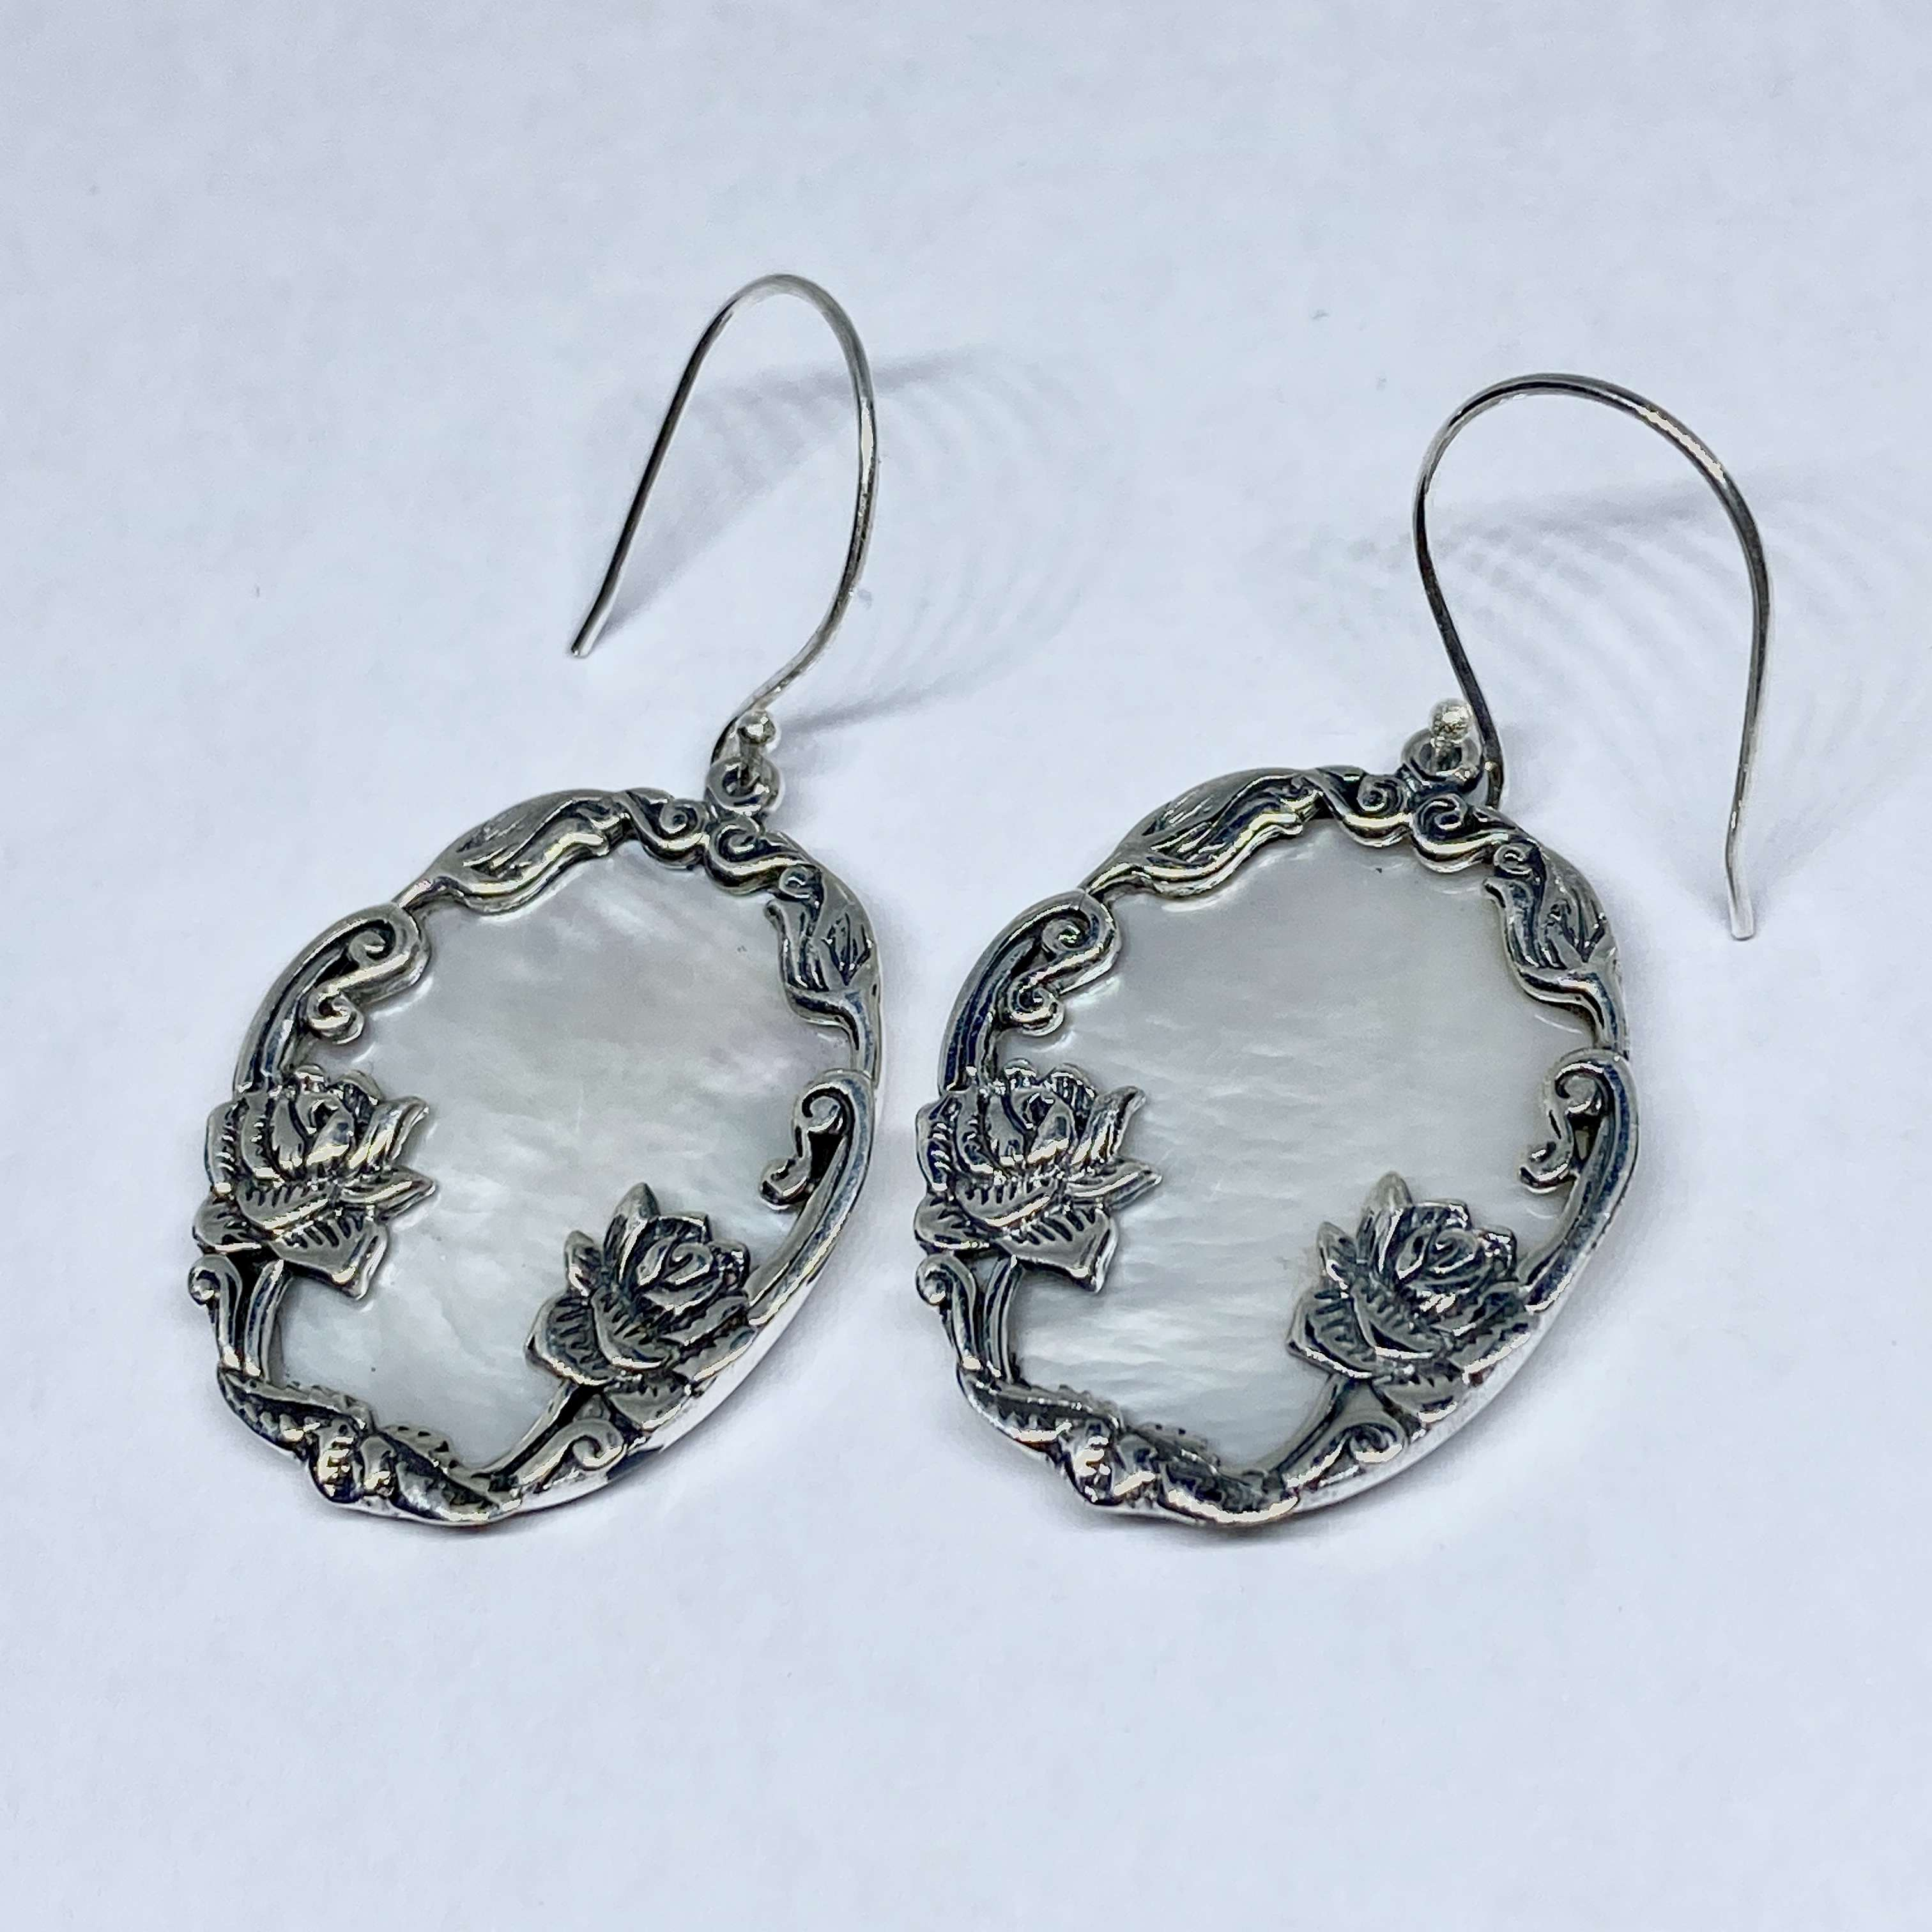 (HANDMADE 925 BALI SILVER DAISY LOTUS EARRINGS WITH MOTHER OF PEARL)